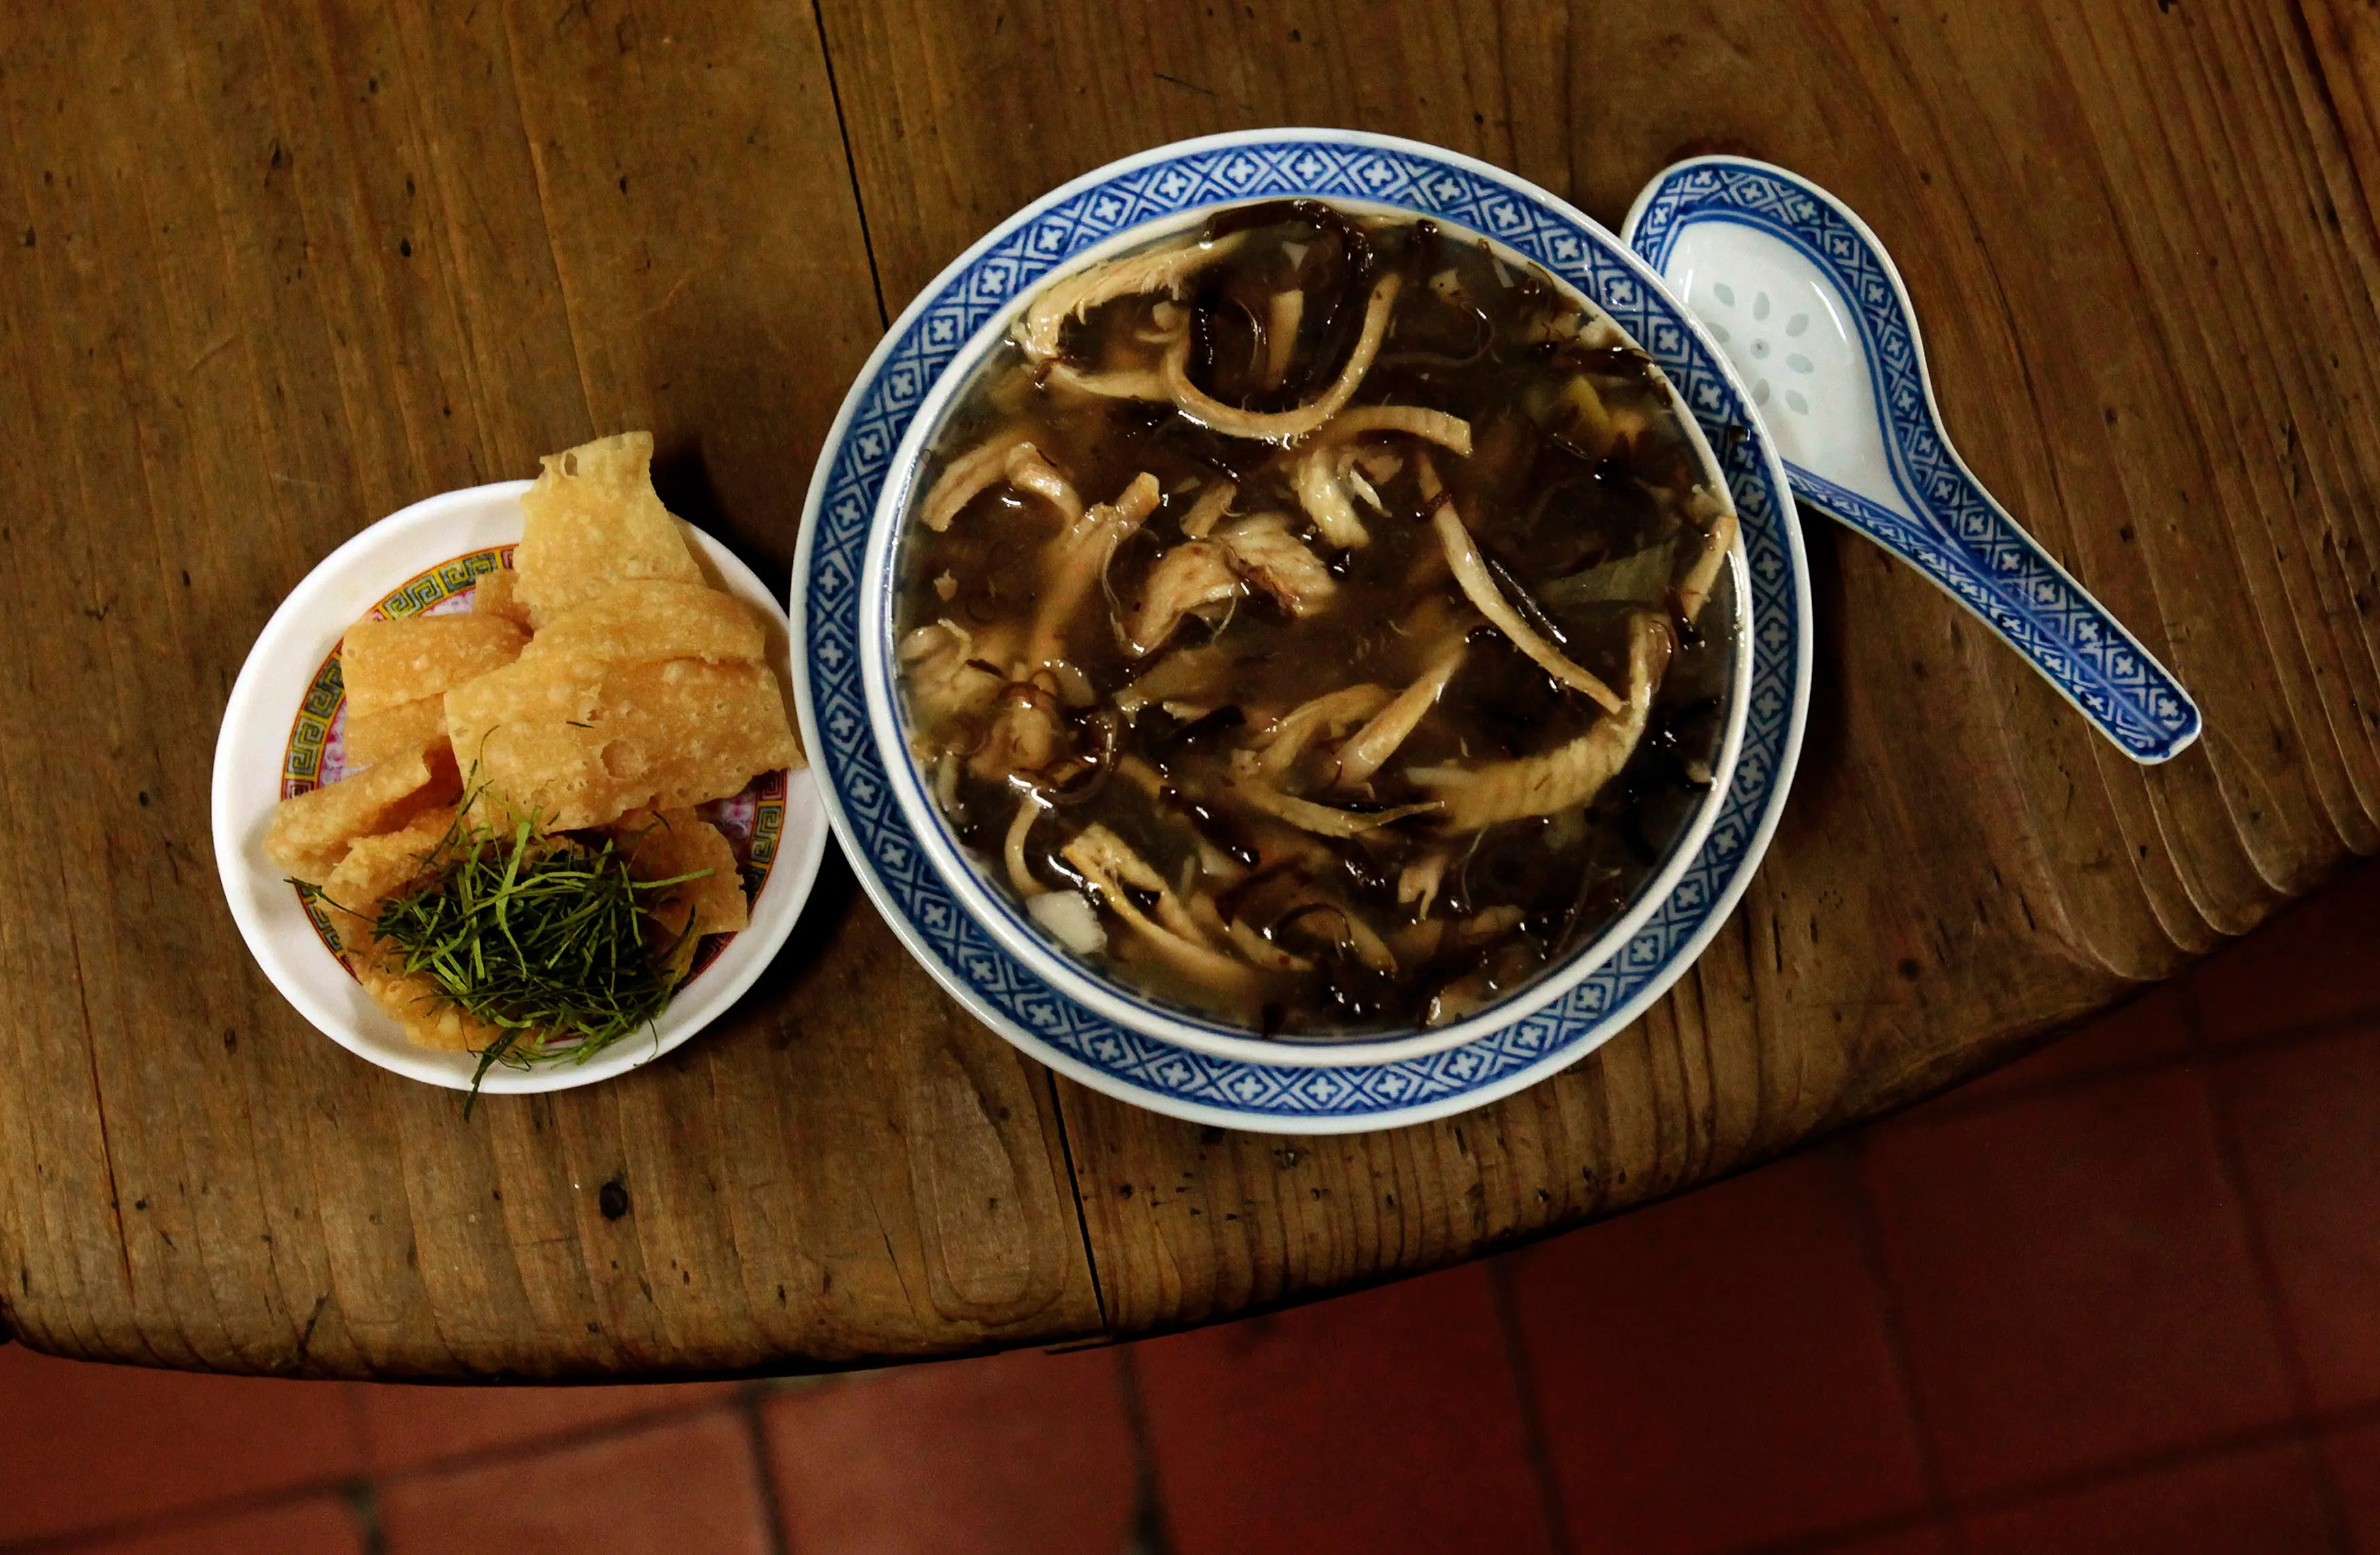 Snake meat is seen as part of a soup dish in China, where snake meat is a traditional part of many regional cuisines and is believed to be good for the health.